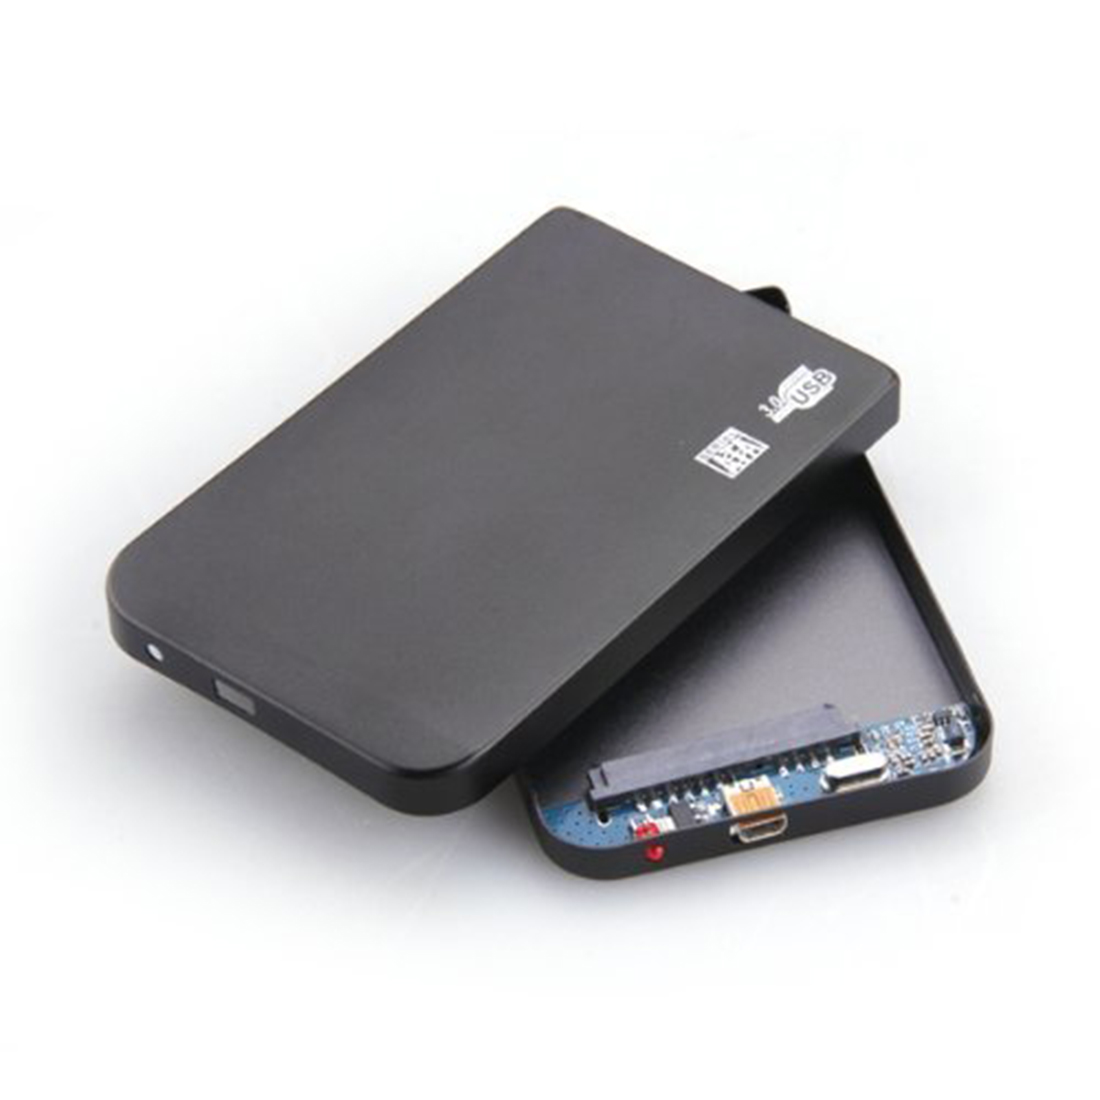 """Hot Sale New Arrive Black External Enclosure for Hard Drive Disk 2.5"""" Usb 3.0 Hdd Drives Portable Case Durable Brand New(China (Mainland))"""